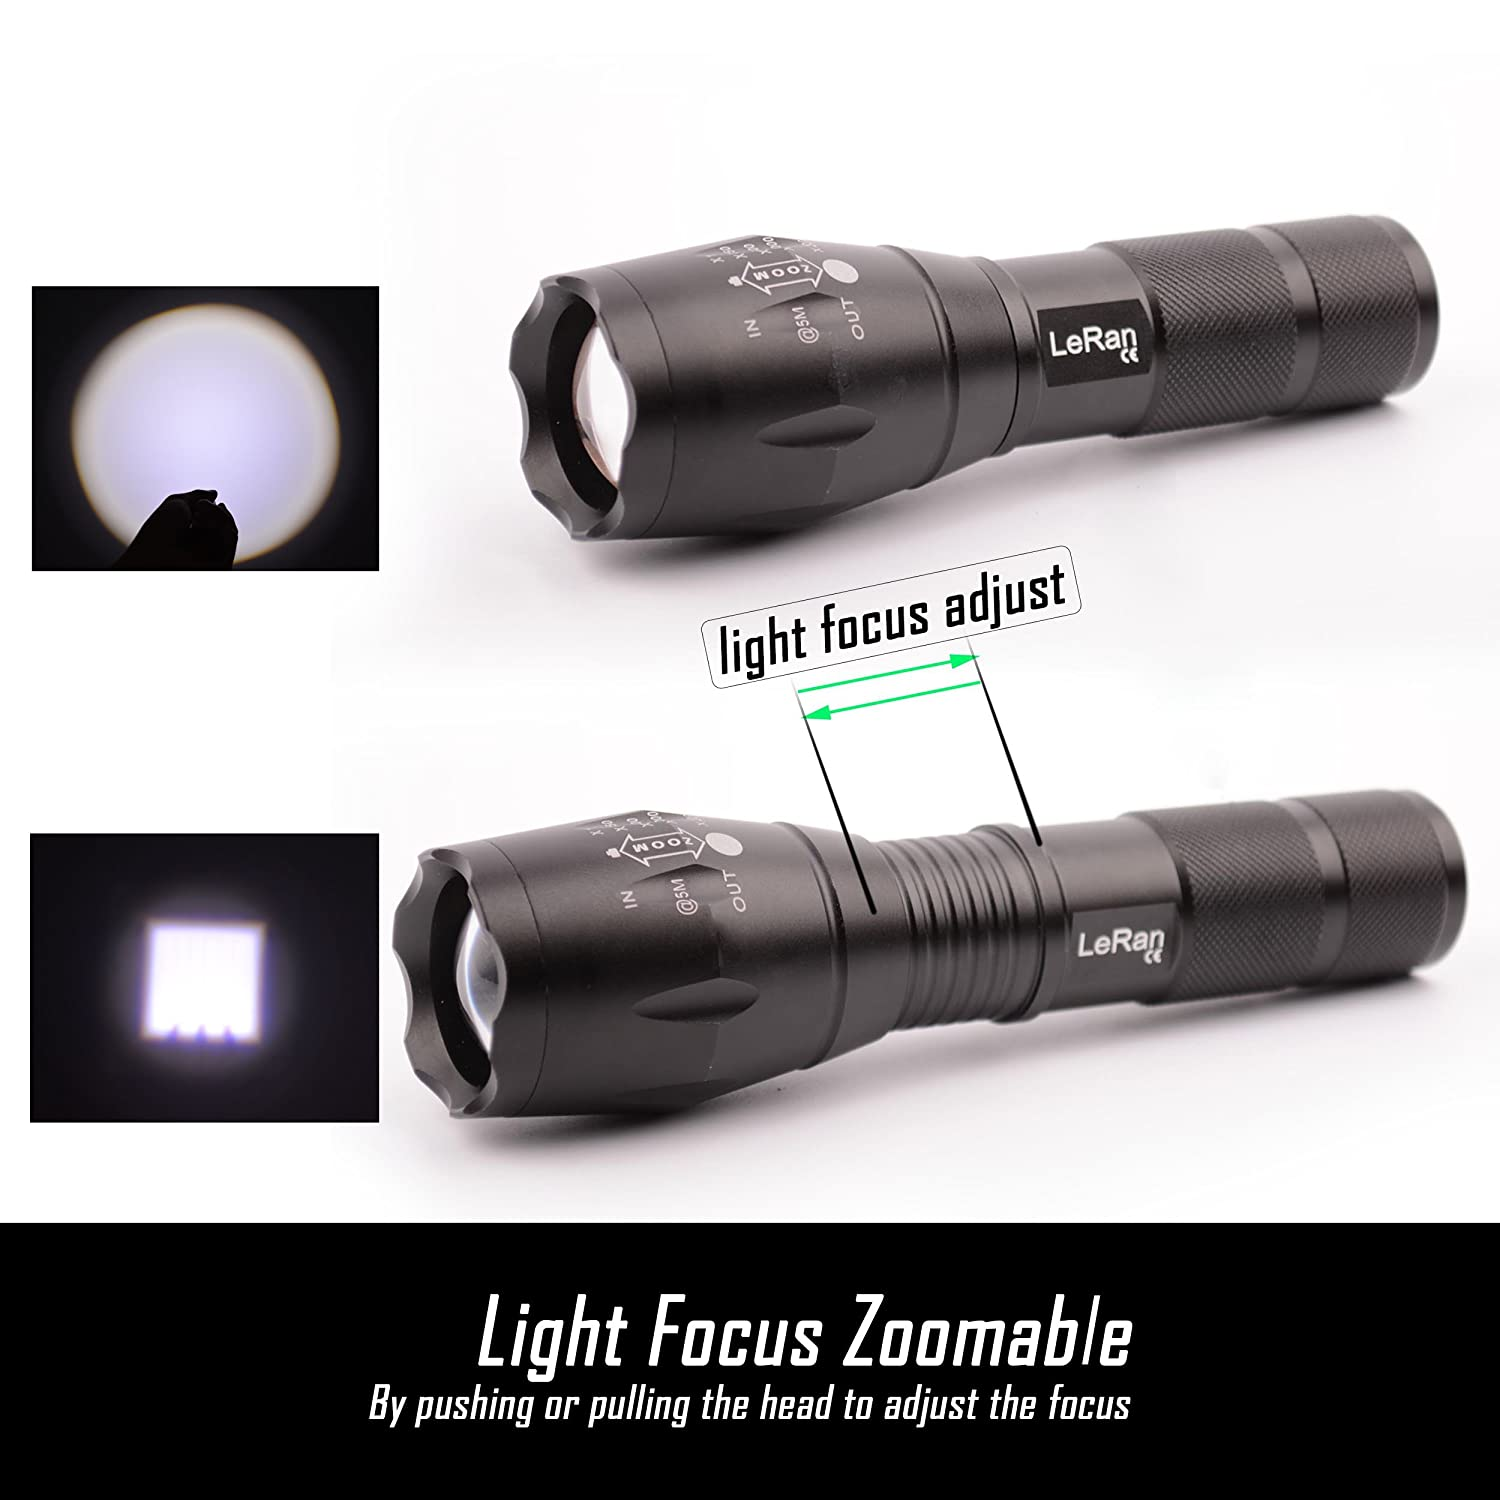 Green LeRan Cree T6 LED Flashlight 1x18650 or 3xAAA Batteries Required LENGSE TECHNOLOGY Magnetic Tail Switch for Convenient Stand Red Filter Lens Aluminium-Alloy Housing White